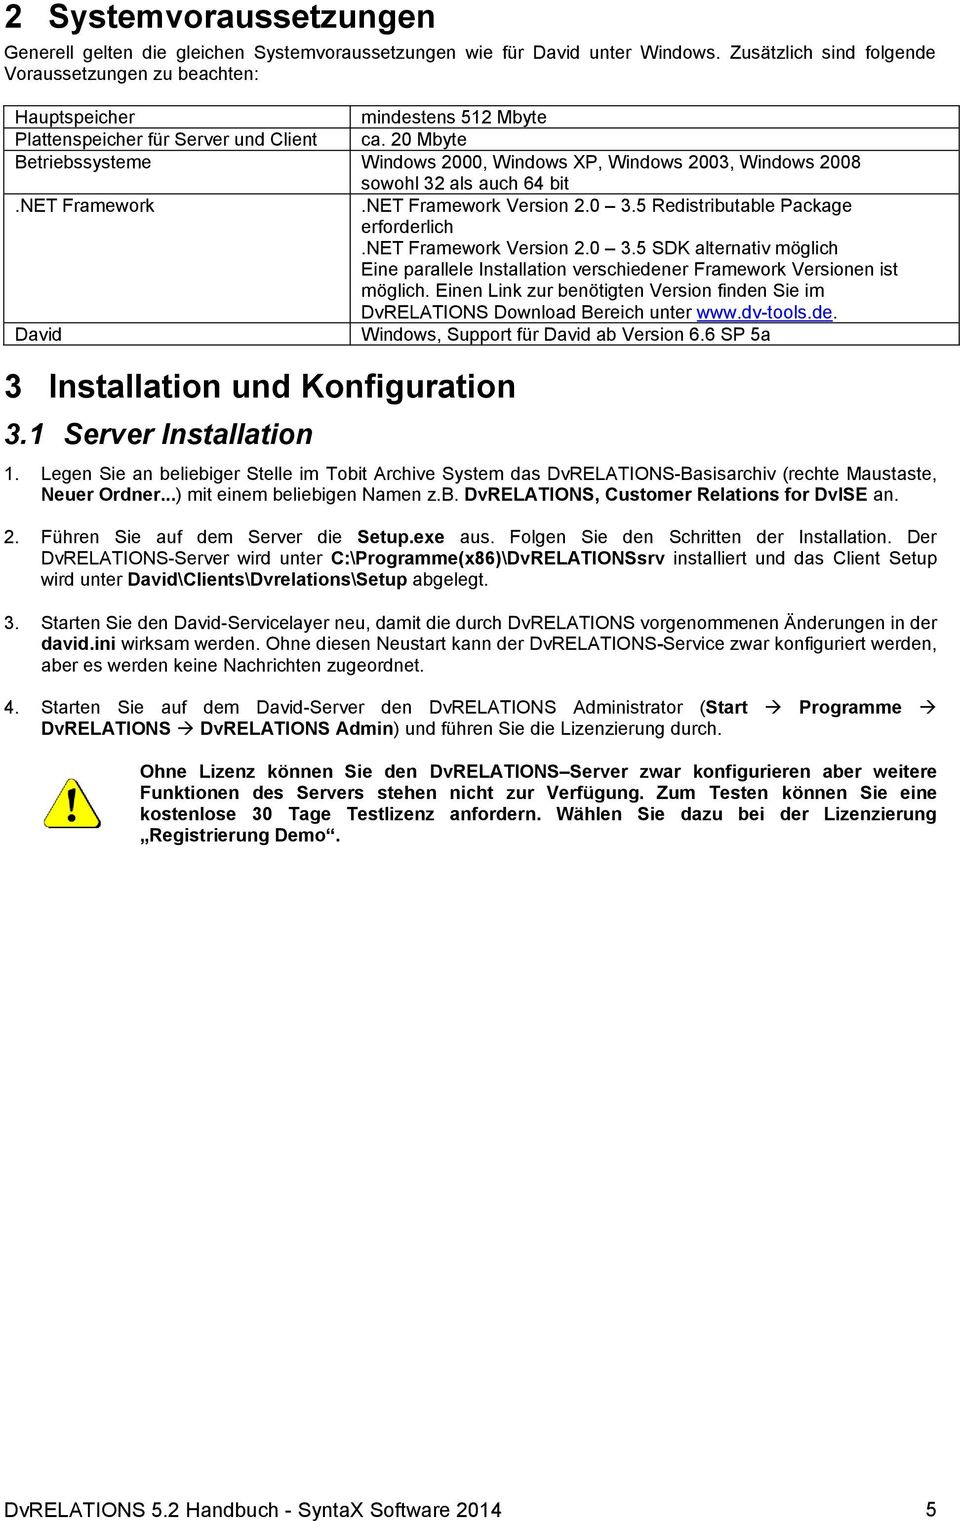 20 Mbyte Betriebssysteme Windows 2000, Windows XP, Windows 2003, Windows 2008 sowohl 32 als auch 64 bit.net Framework.NET Framework Version 2.0 3.5 Redistributable Package erforderlich.